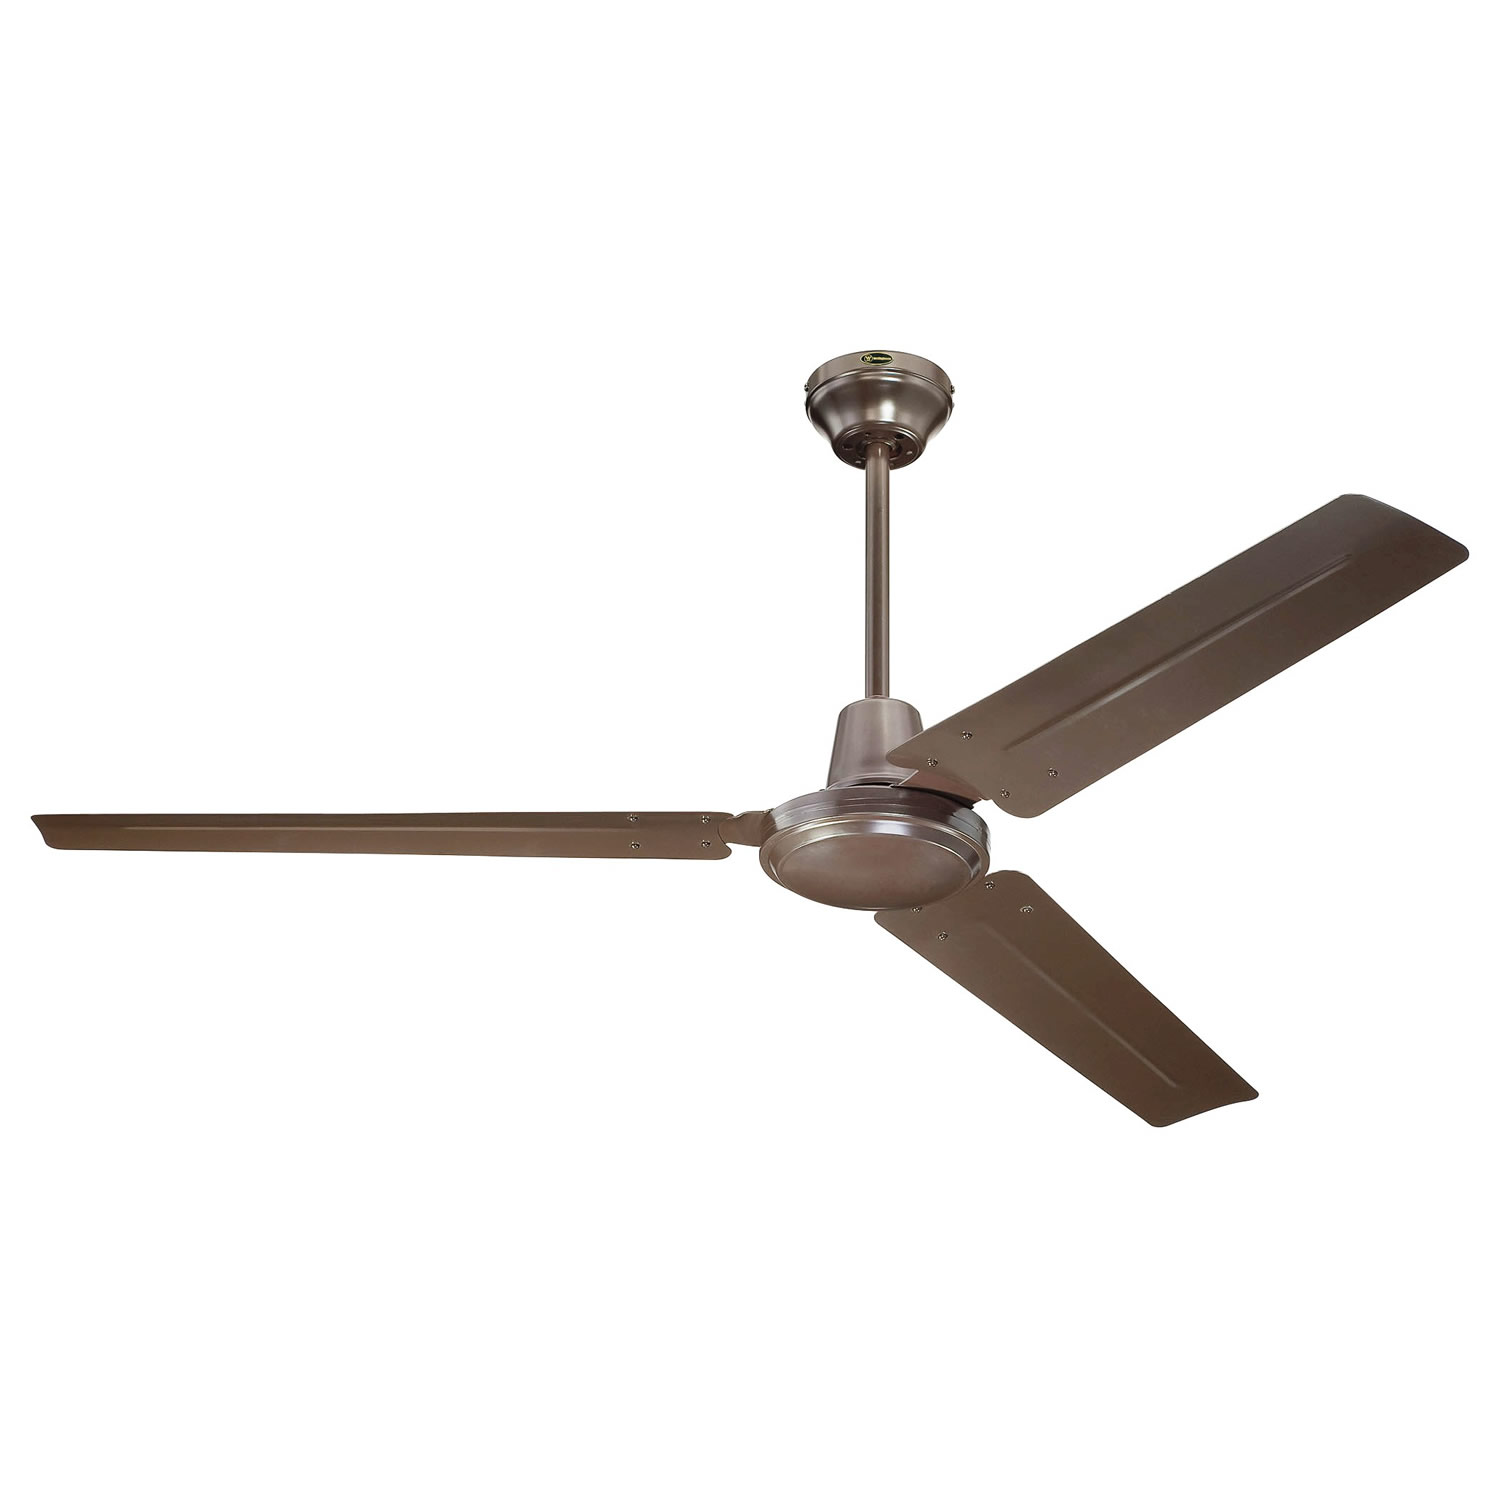 Best Ceiling Fan For Large Great Room: Westinghouse Industrial Ceiling Fan